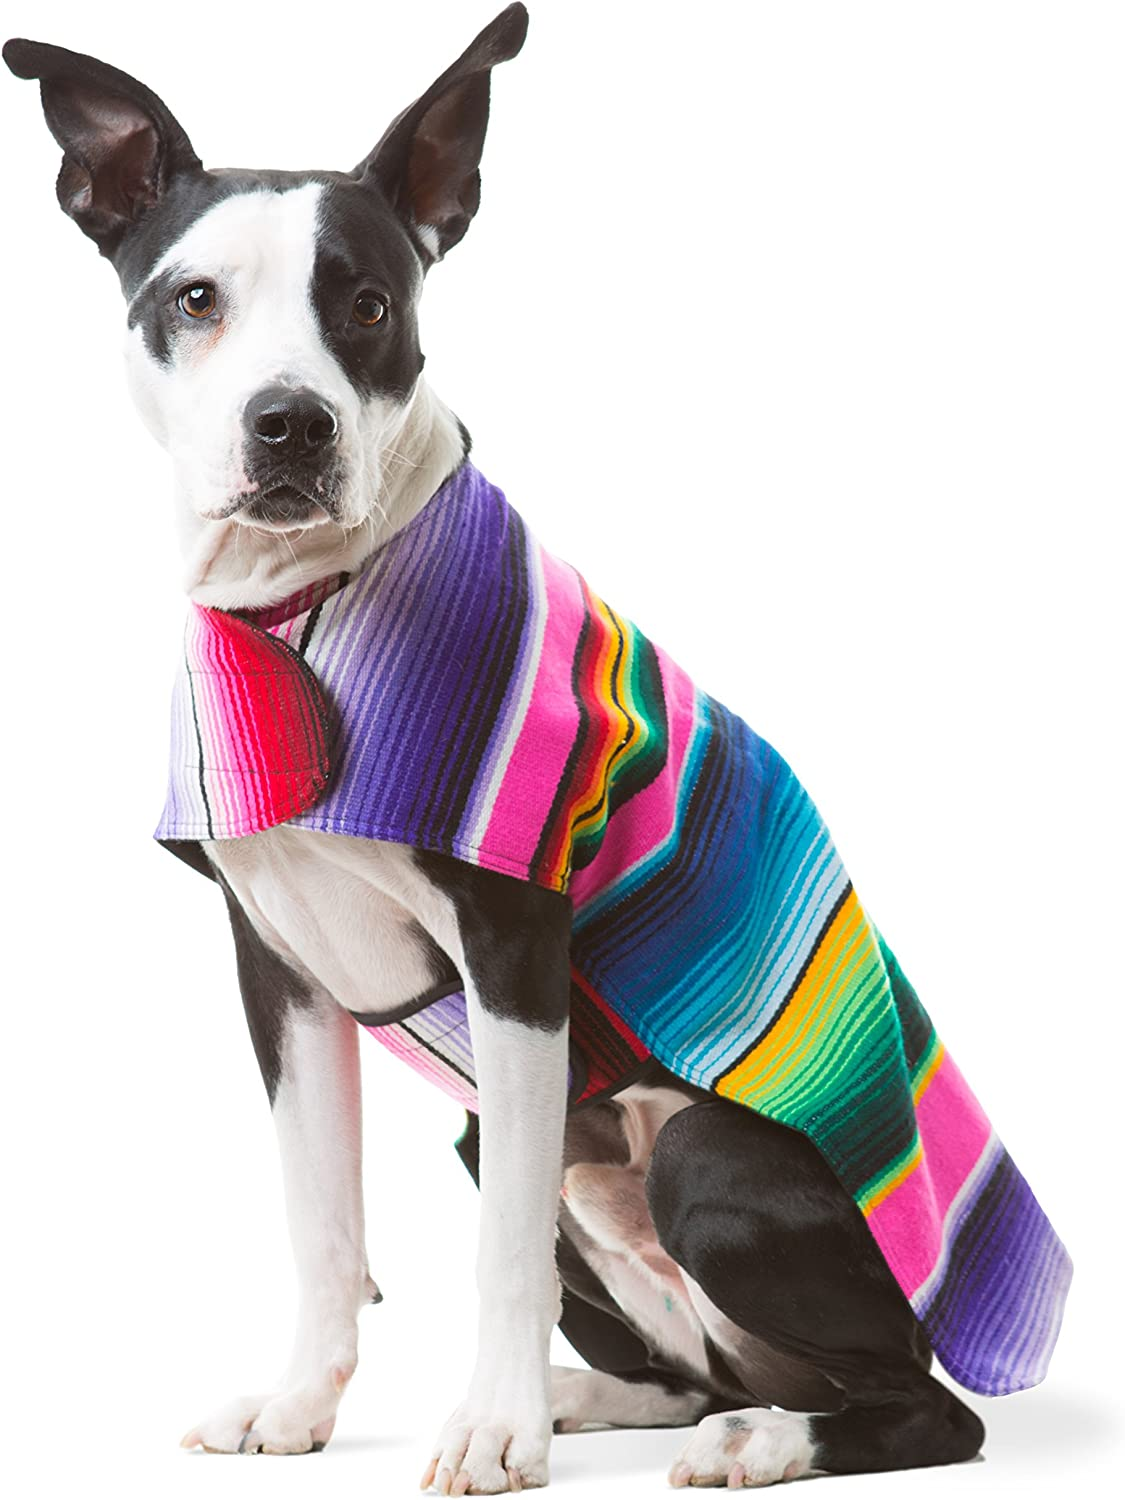 Baja Ponchos Dog Clothes  Handmade Dog Poncho from Authentic Mexican Blanket (Pink No Fringe, XXL)